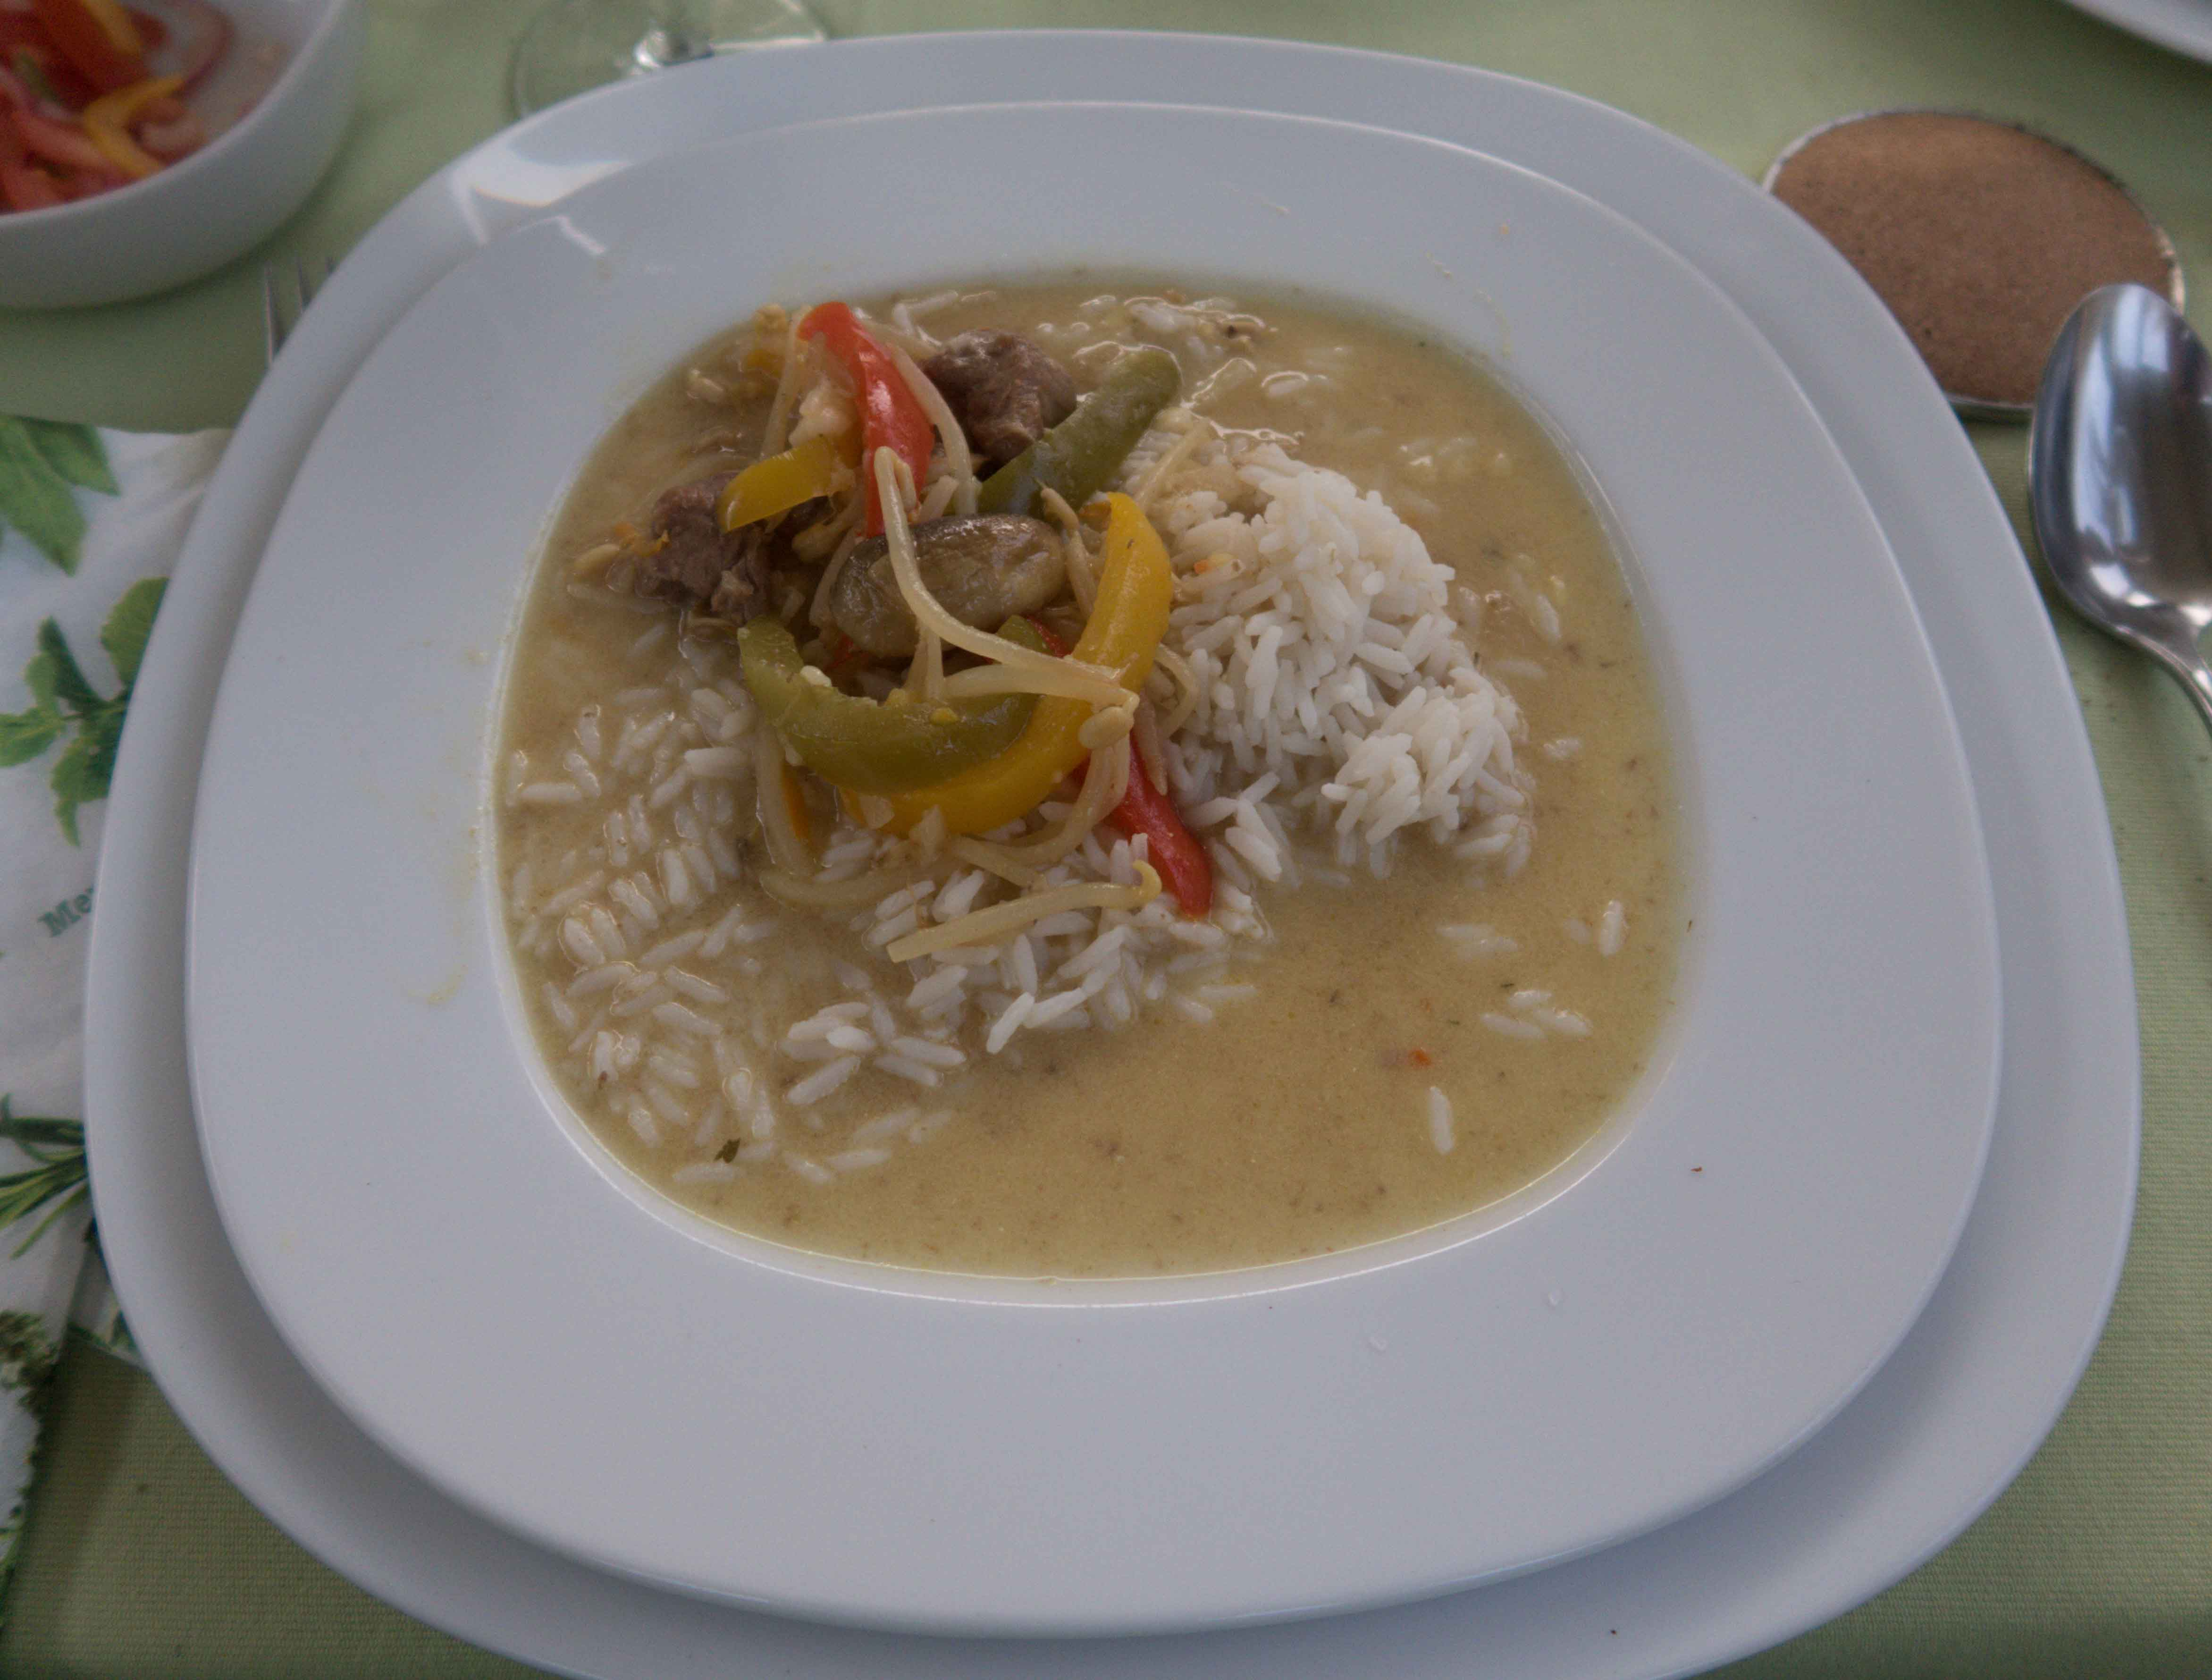 Lammcurry mit Reis am Teller